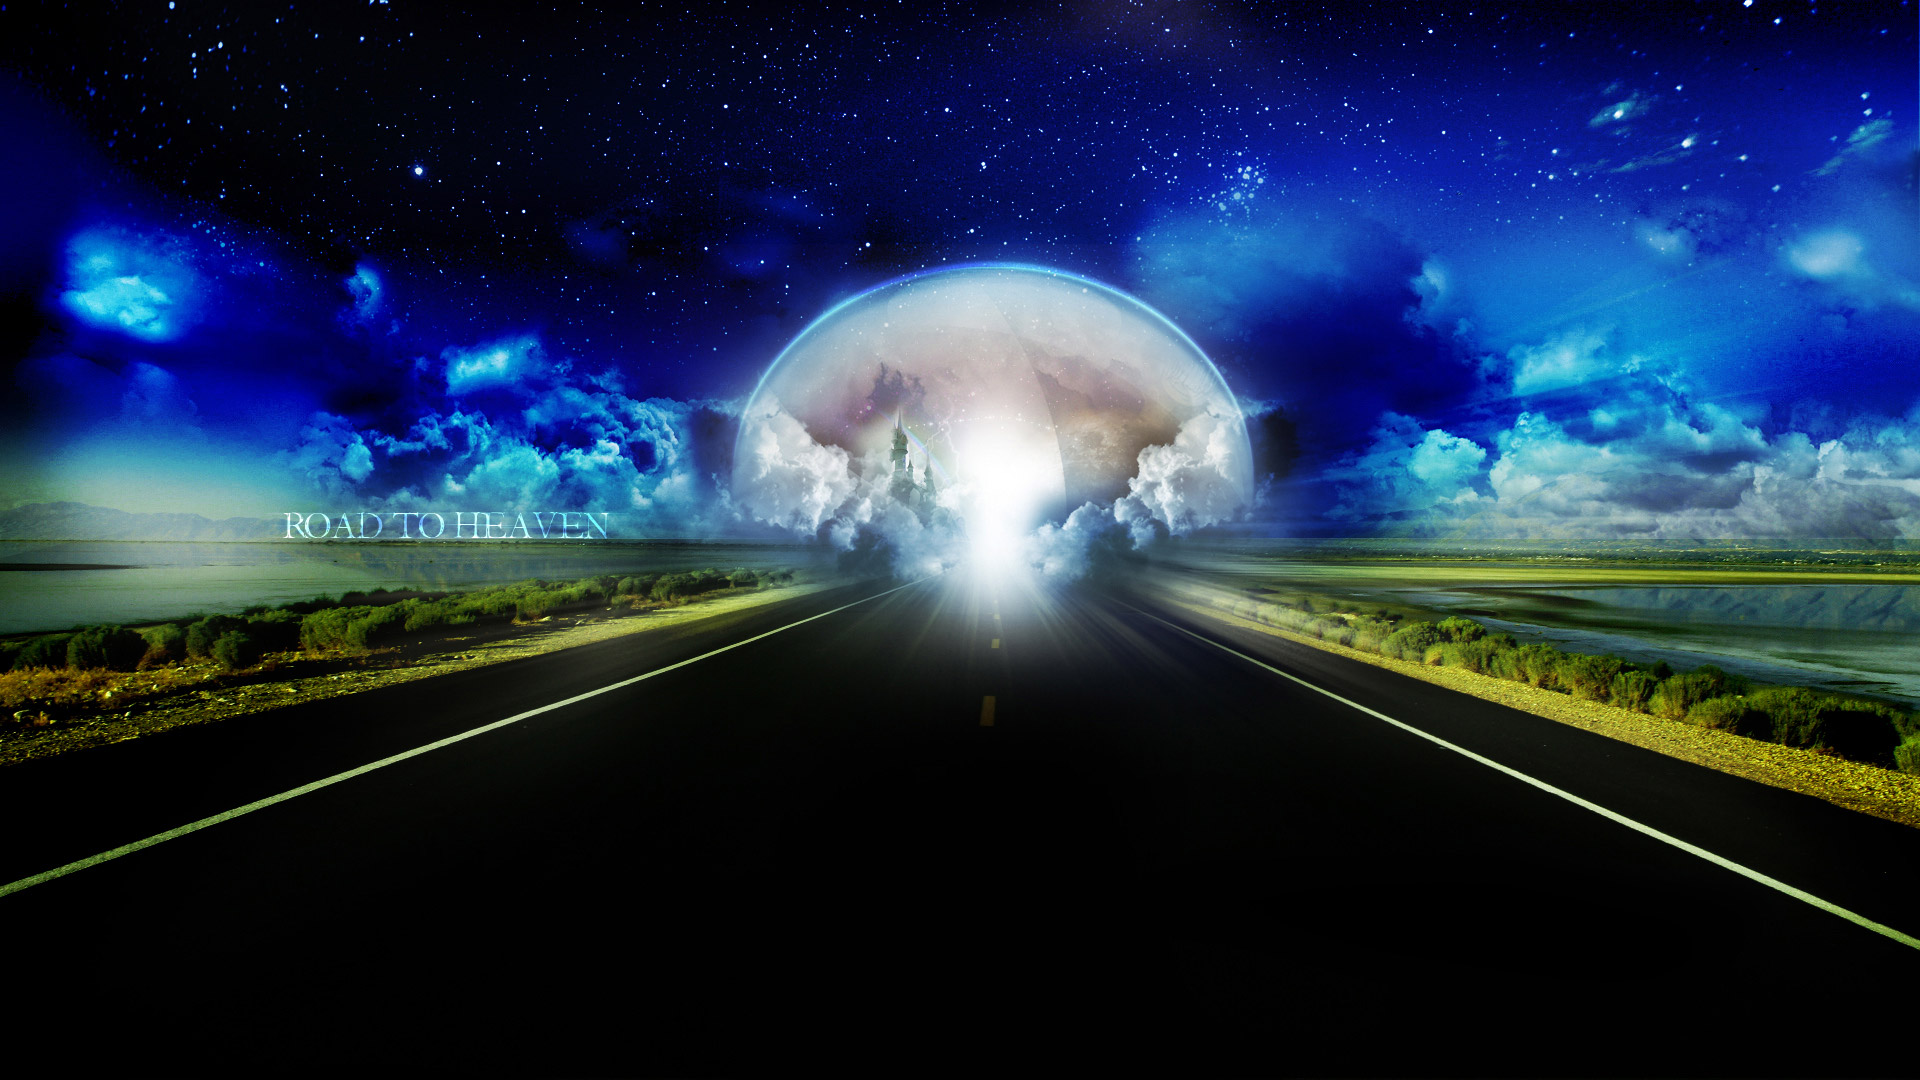 Road to Heaven Wallpapers HD Wallpapers 1920x1080